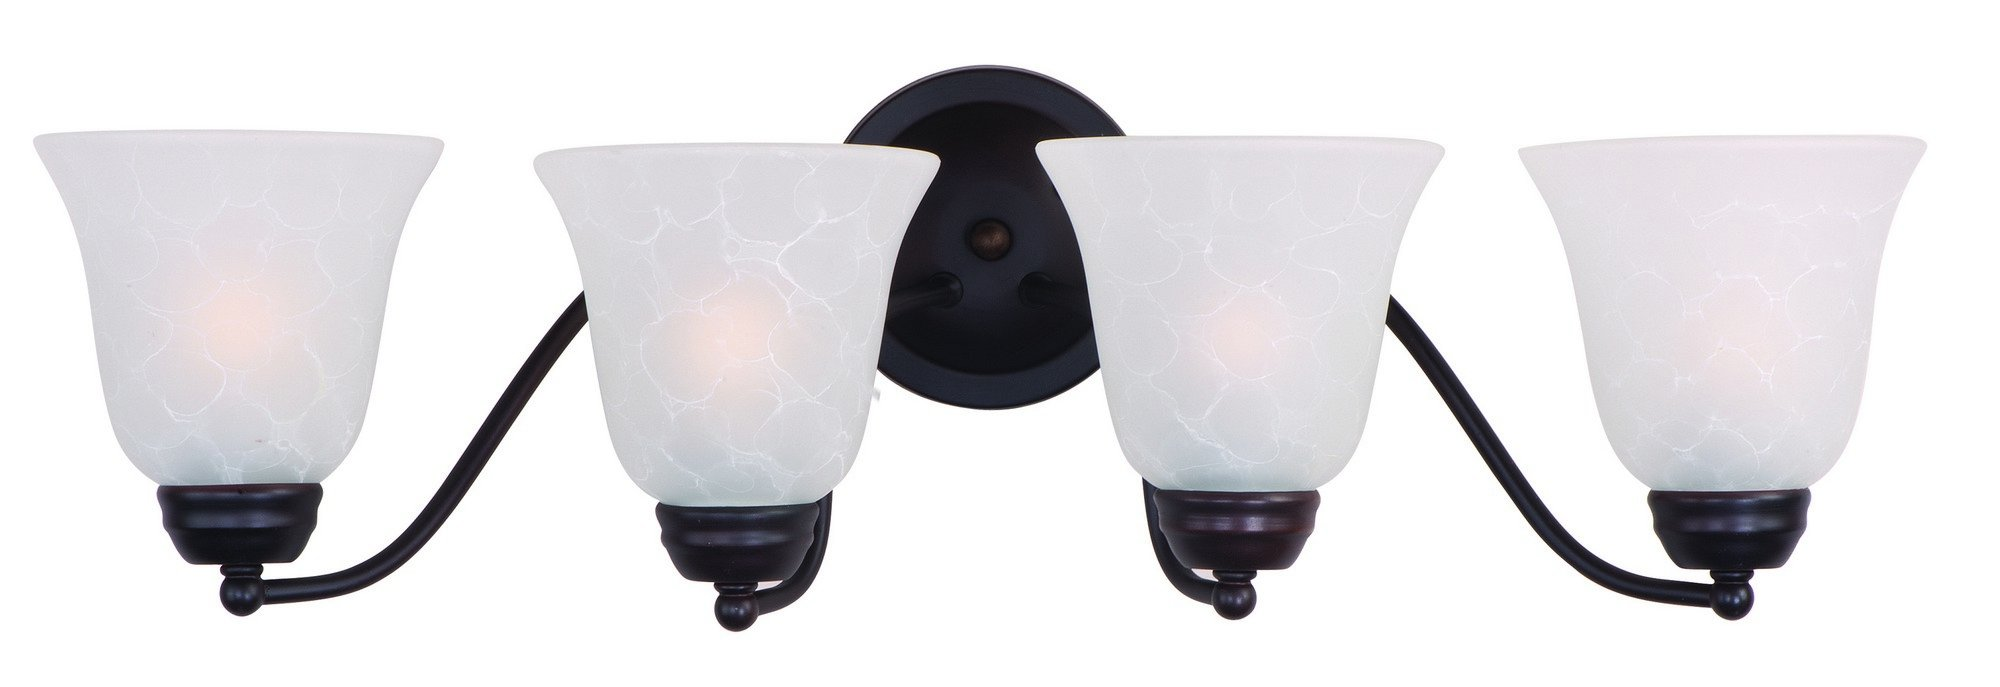 Maxim 2123ICOI Basix 4-Light Bath Vanity, Oil Rubbed Bronze Finish, Ice Glass, MB Incandescent Incandescent Bulb , 12W Max., Dry Safety Rating, 3000K Color Temp, Opal Acrylic Shade Material, 1200 Rated Lumens